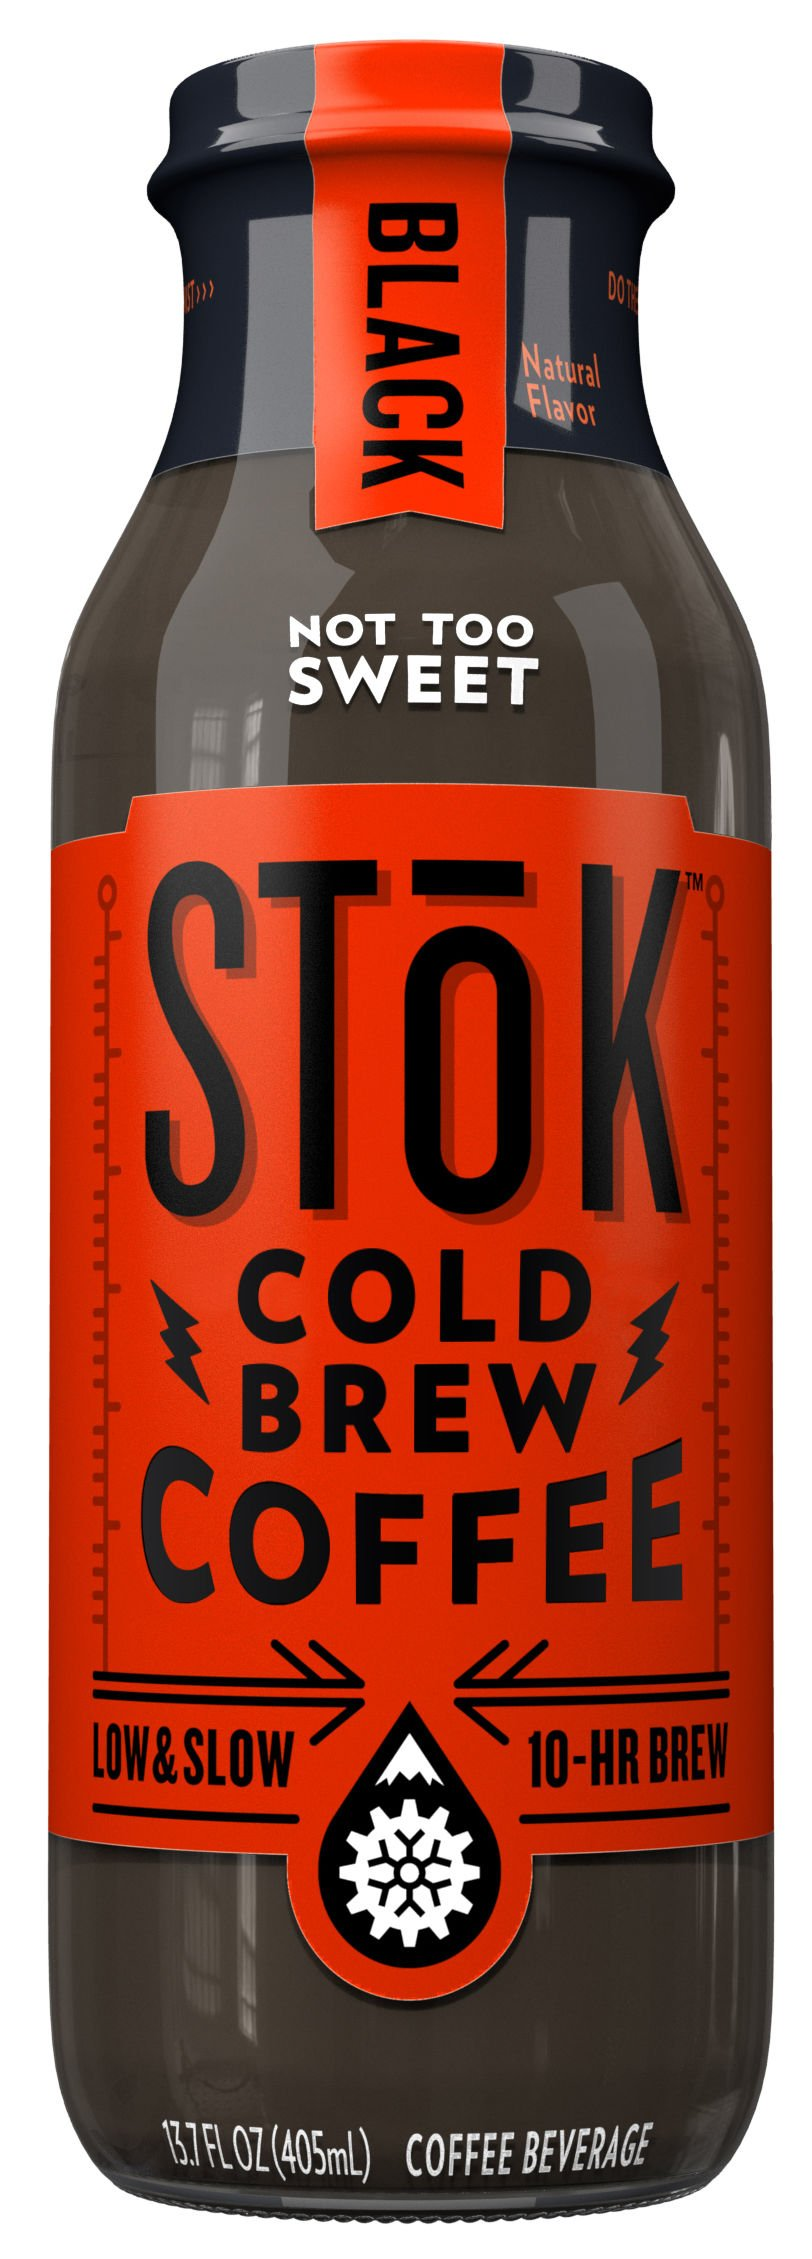 SToK Cold Brew Iced Coffee, Black, 13.7 oz